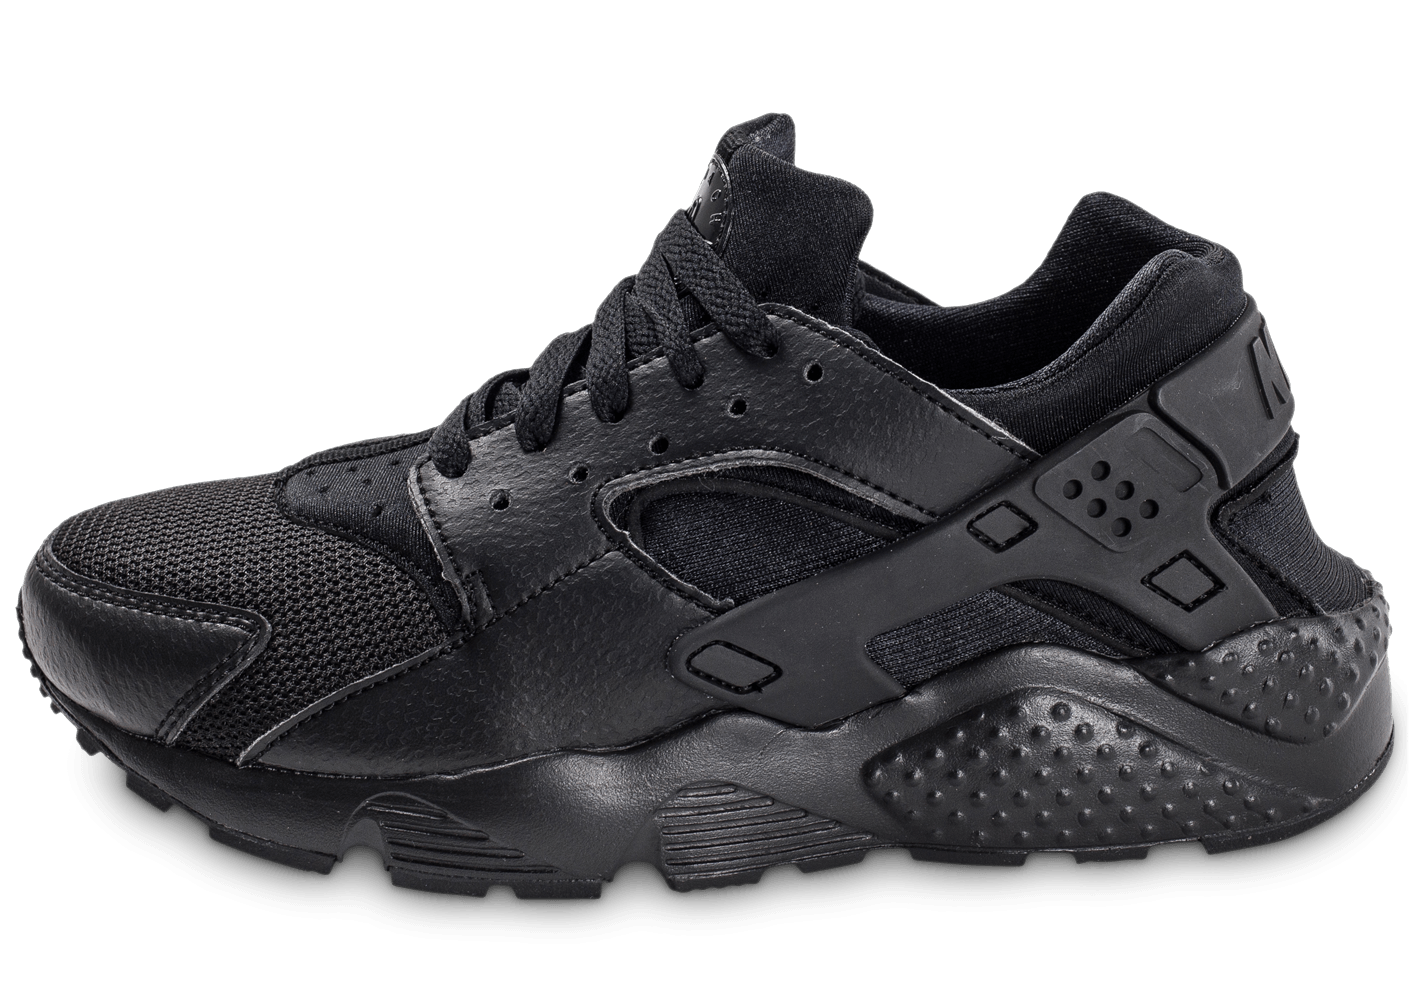 nike huarache run junior noire chaussures black friday chausport. Black Bedroom Furniture Sets. Home Design Ideas